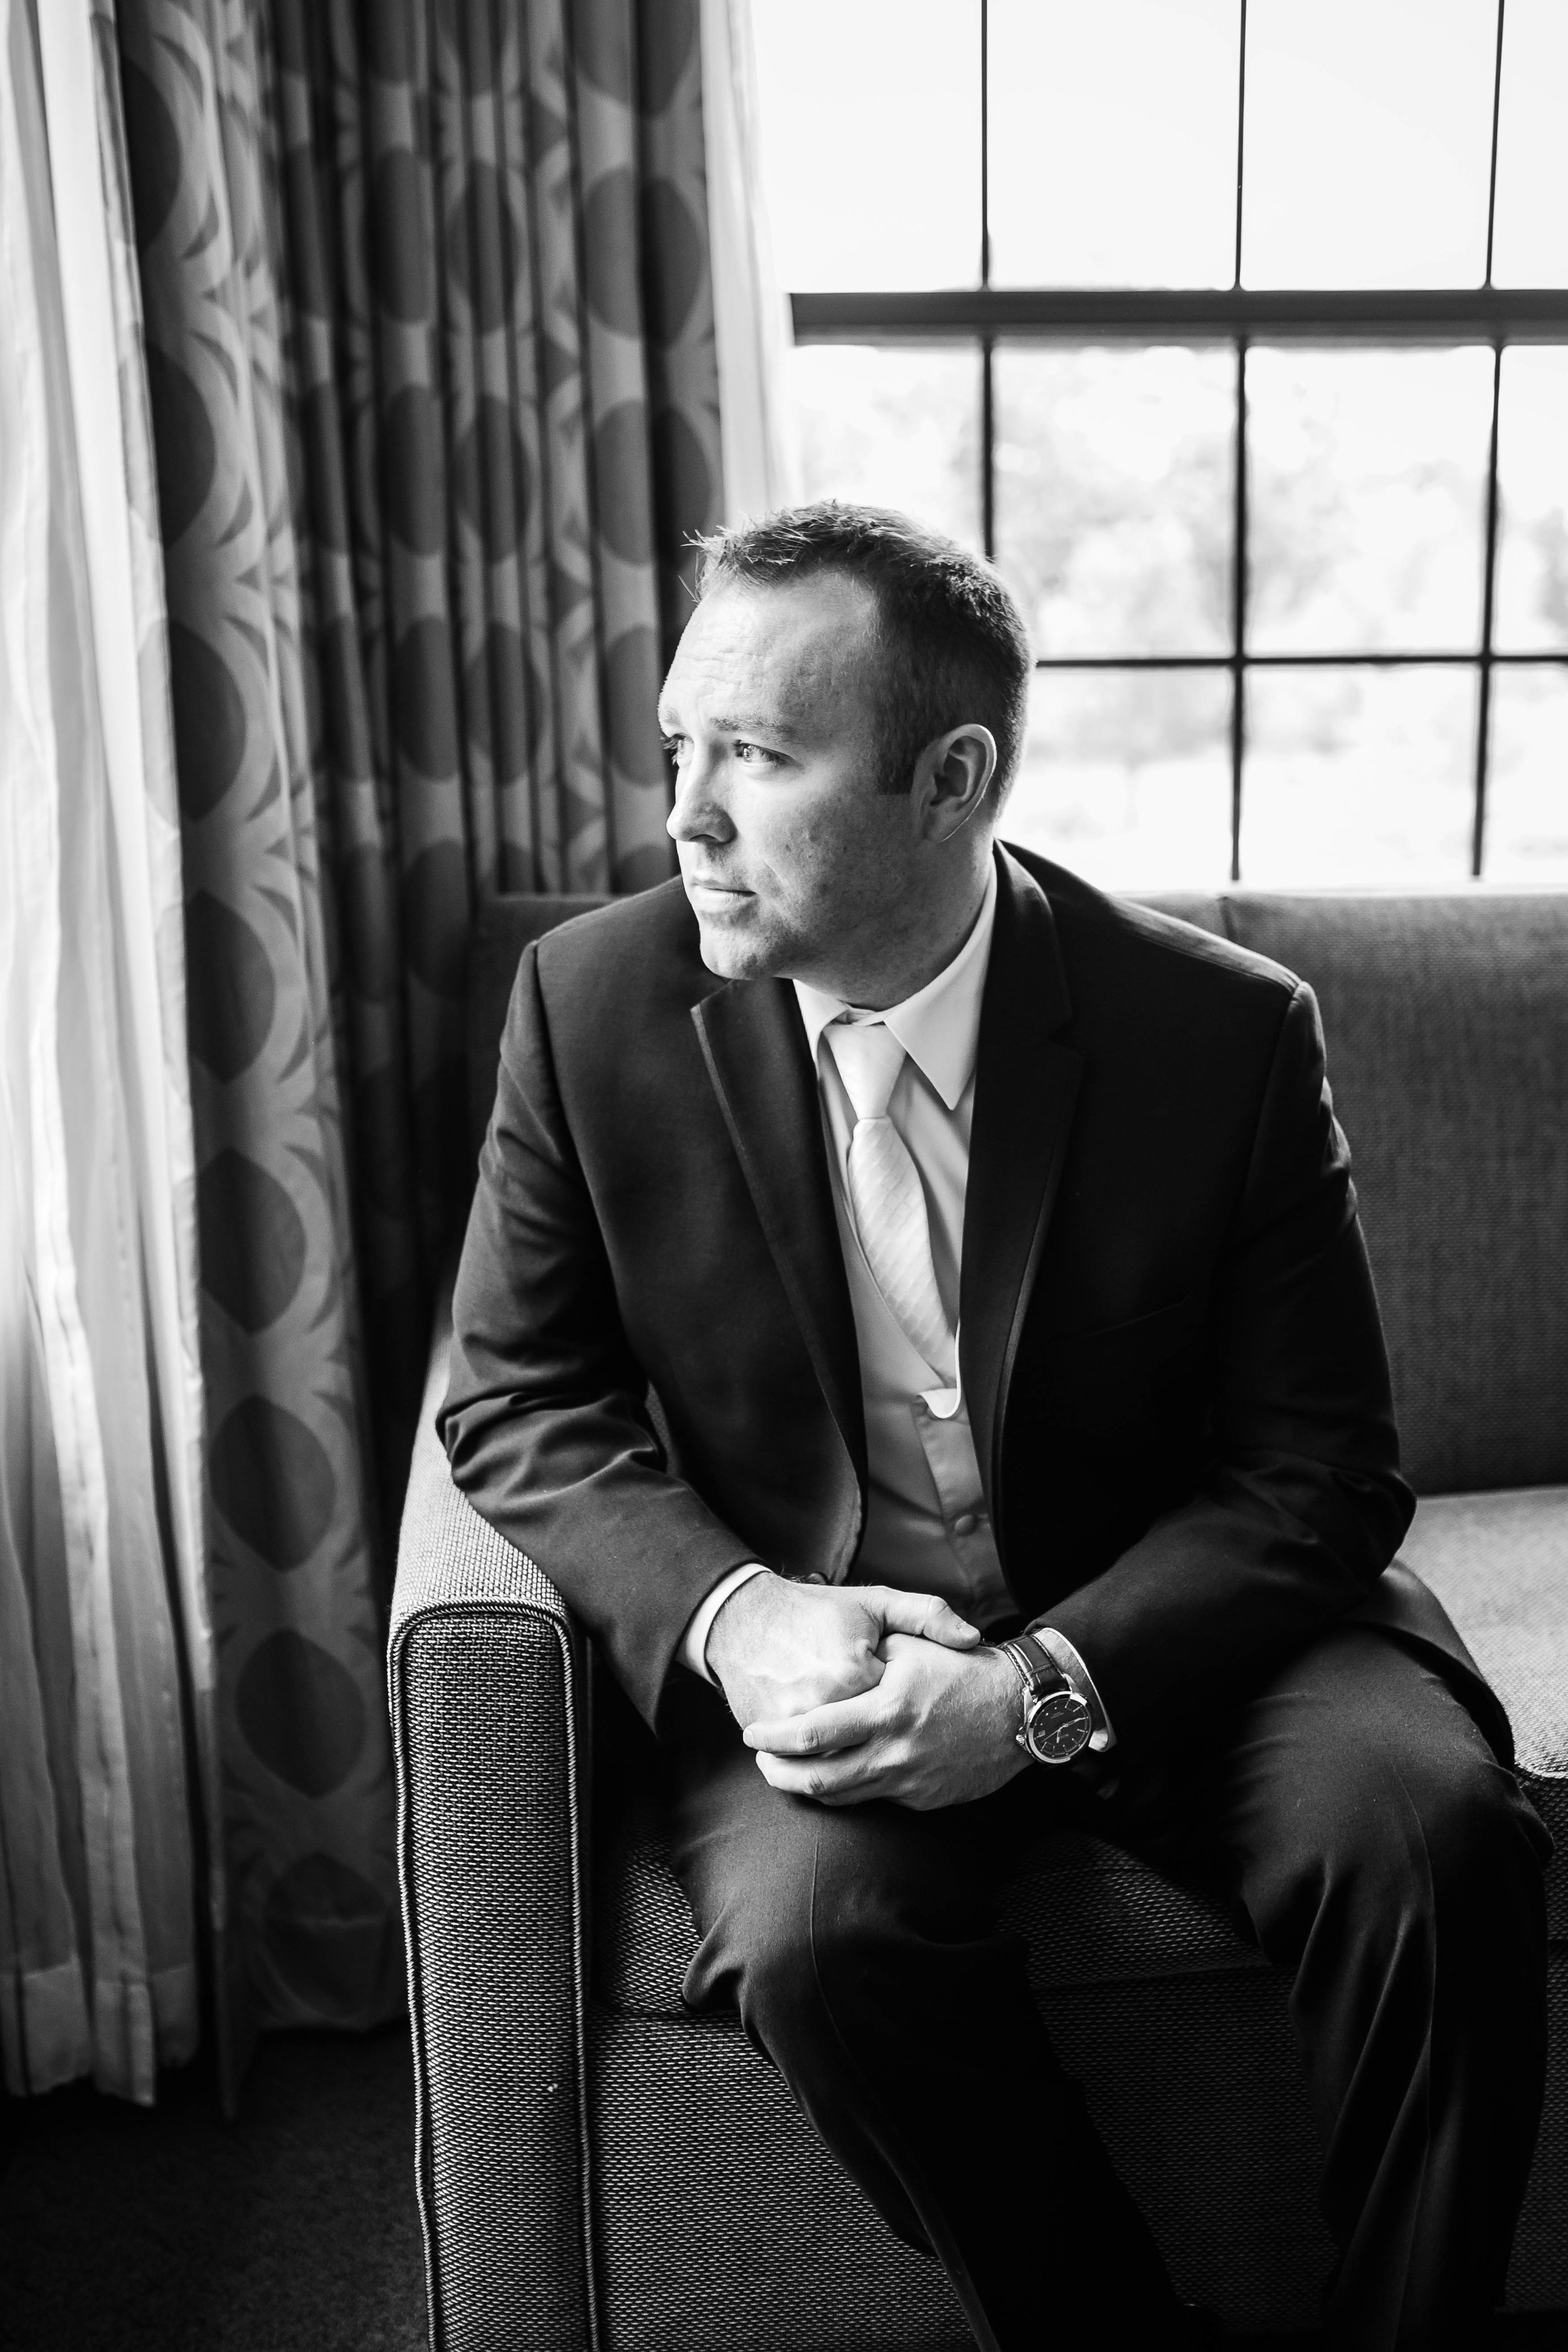 black and white portrait of groom looking out a window